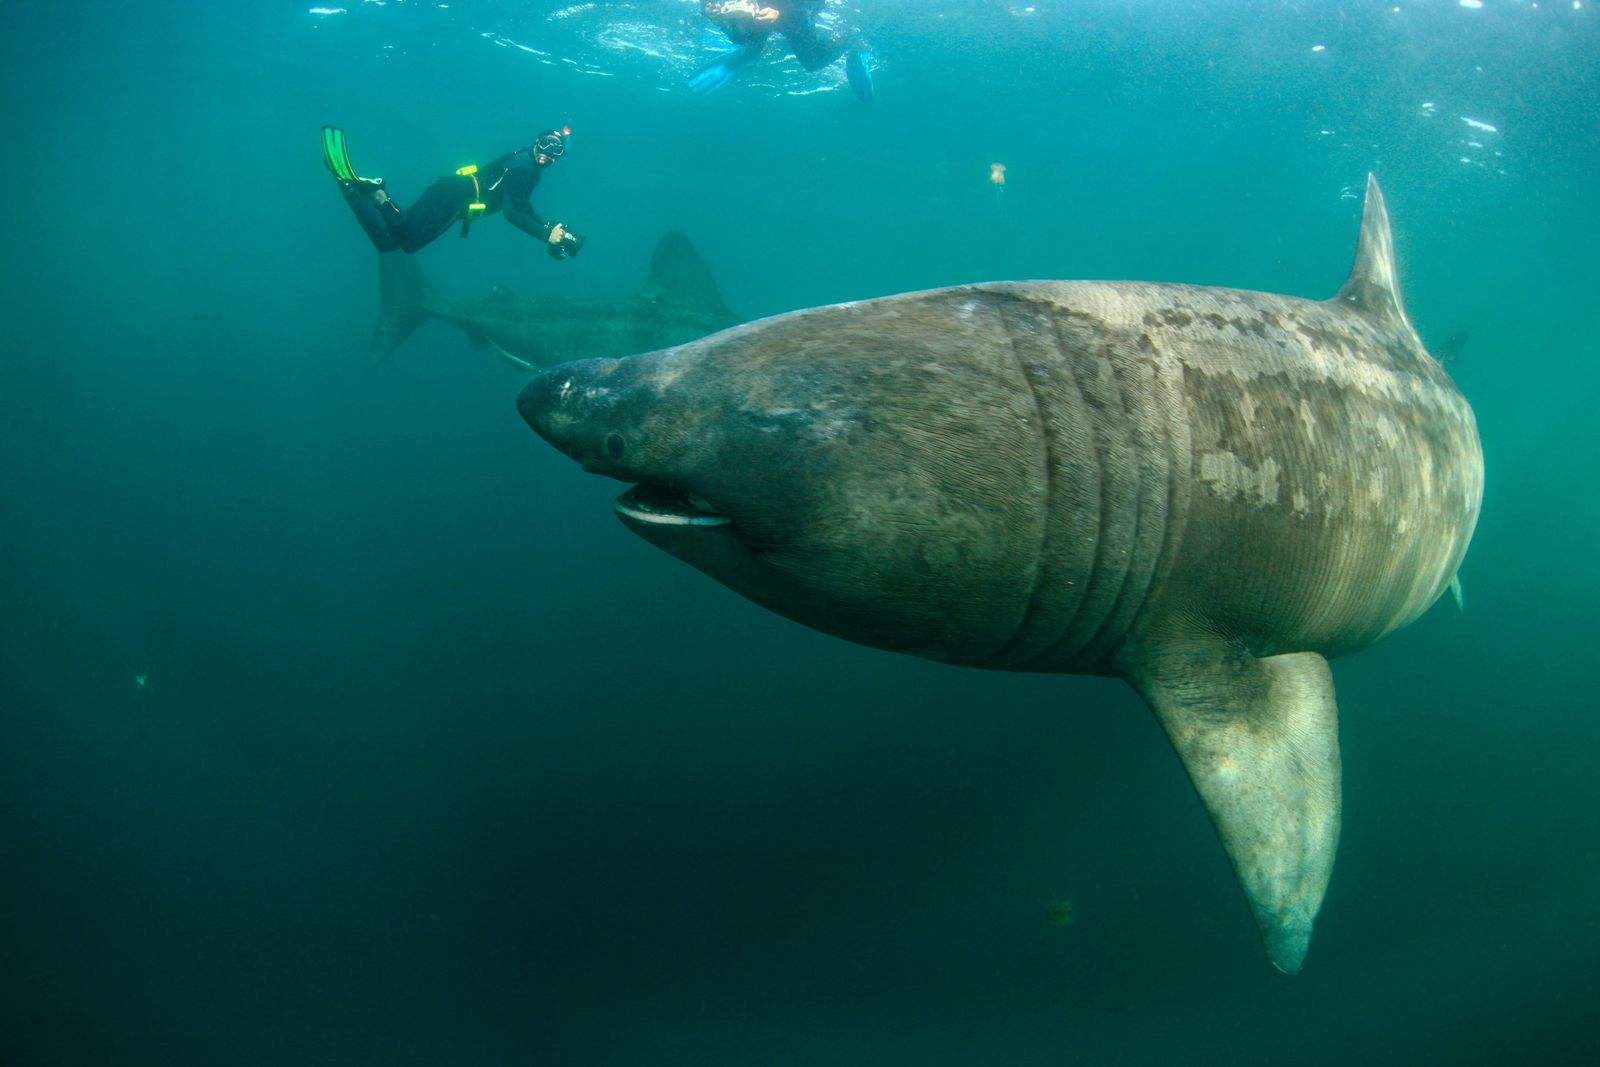 Divers observe two basking sharks off the coast of Mull, Scotland. Usually portrayed with their huge ...